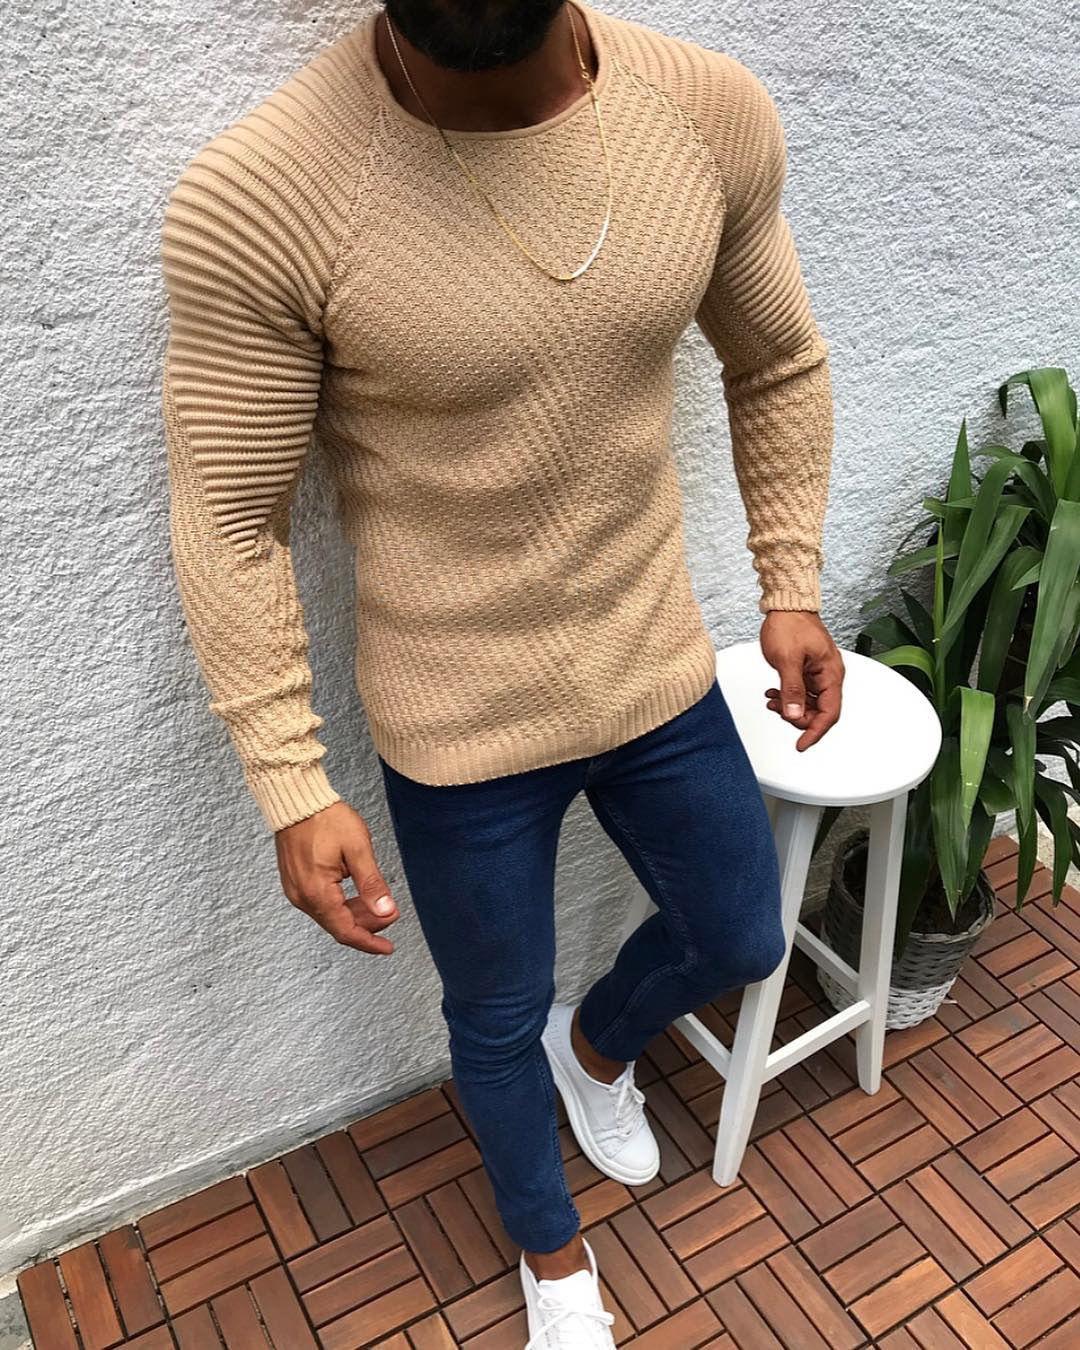 PUIMENTIUA Autumn Winter Sweater Men 2019 New Arrival Casual Pullover Men Long Sleeve O-Neck Patchwork Knitted Solid Men Sweater